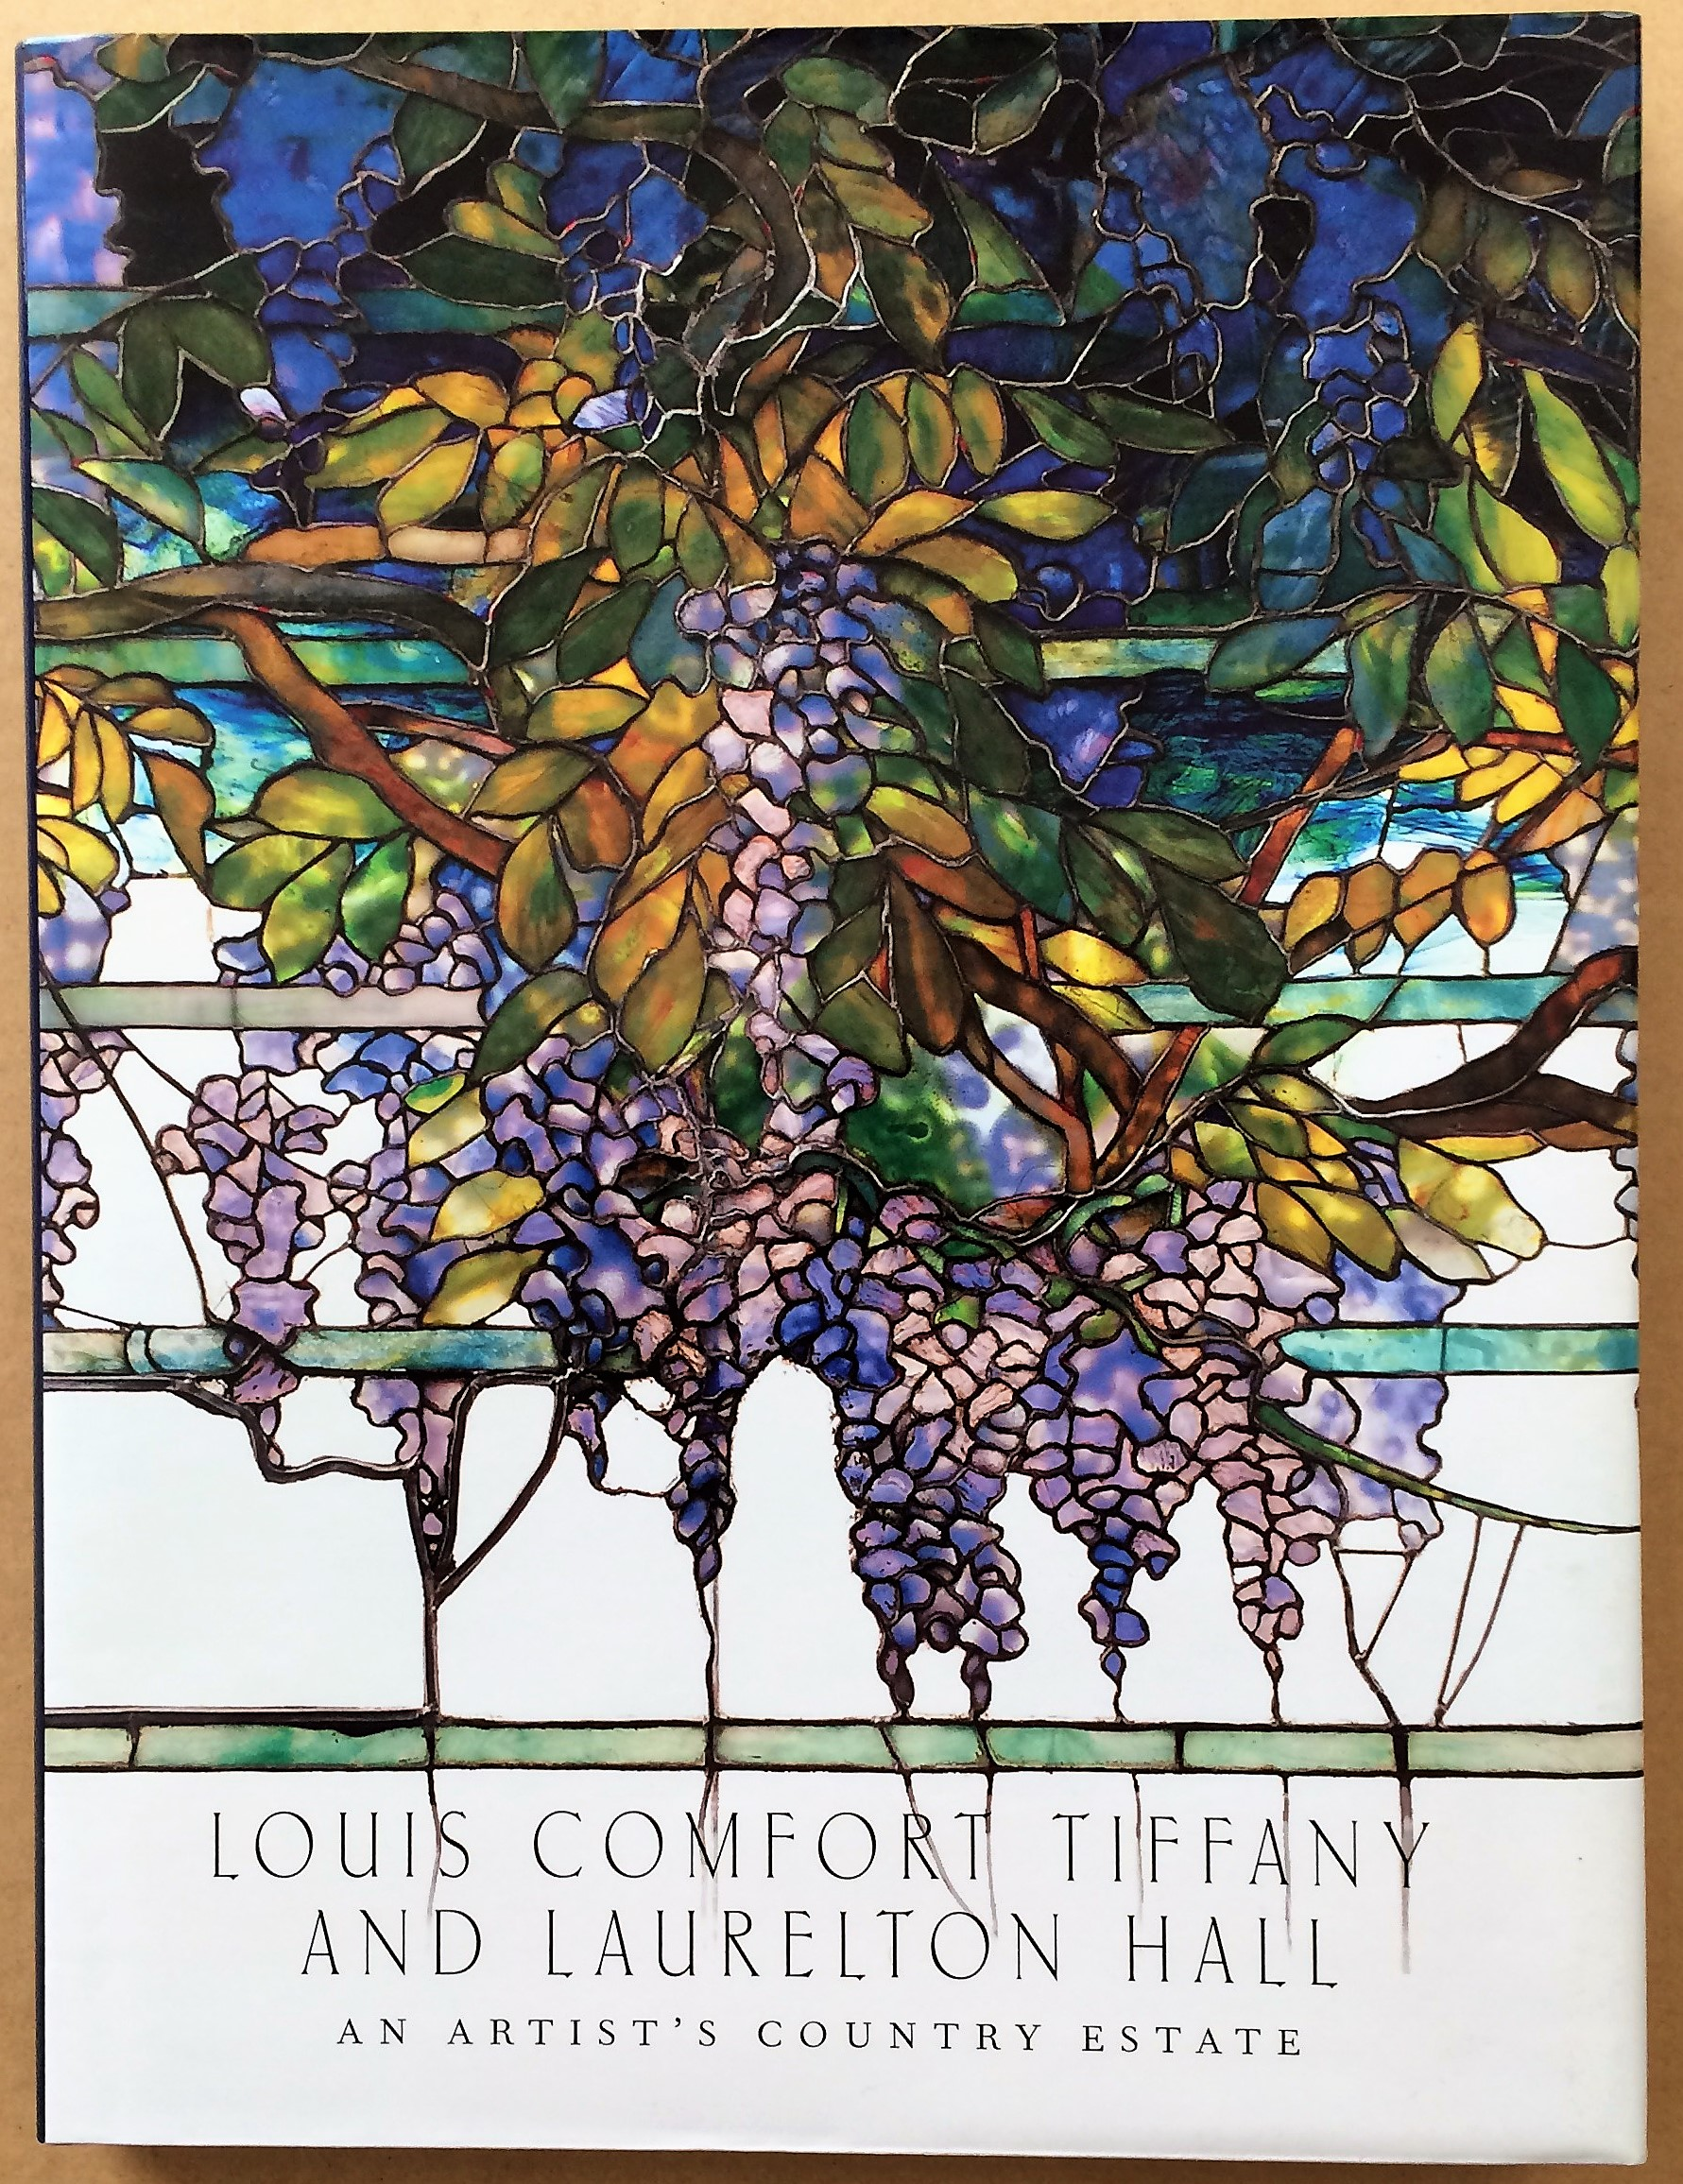 Image for Louis Comfort Tiffany and Laurelton Hall, An Artist's Country Estate